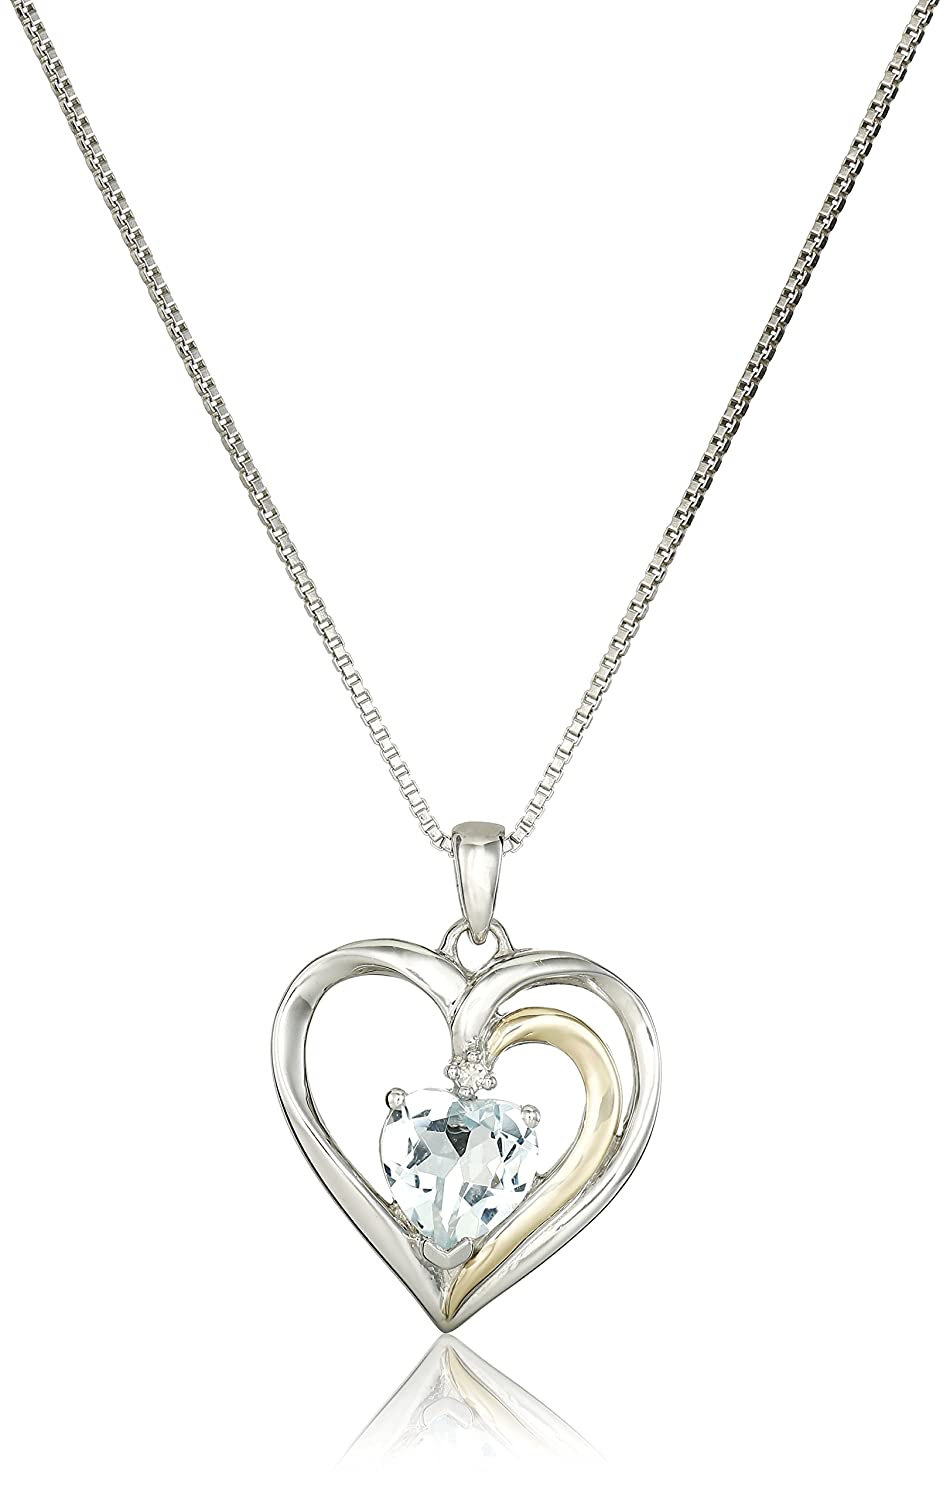 Amazon sterling silver and 14k yellow gold gold aquamarine and amazon sterling silver and 14k yellow gold gold aquamarine and diamond heart pendant necklace 007 cttw i j color i2 i3 clarity 18 jewelry aloadofball Image collections